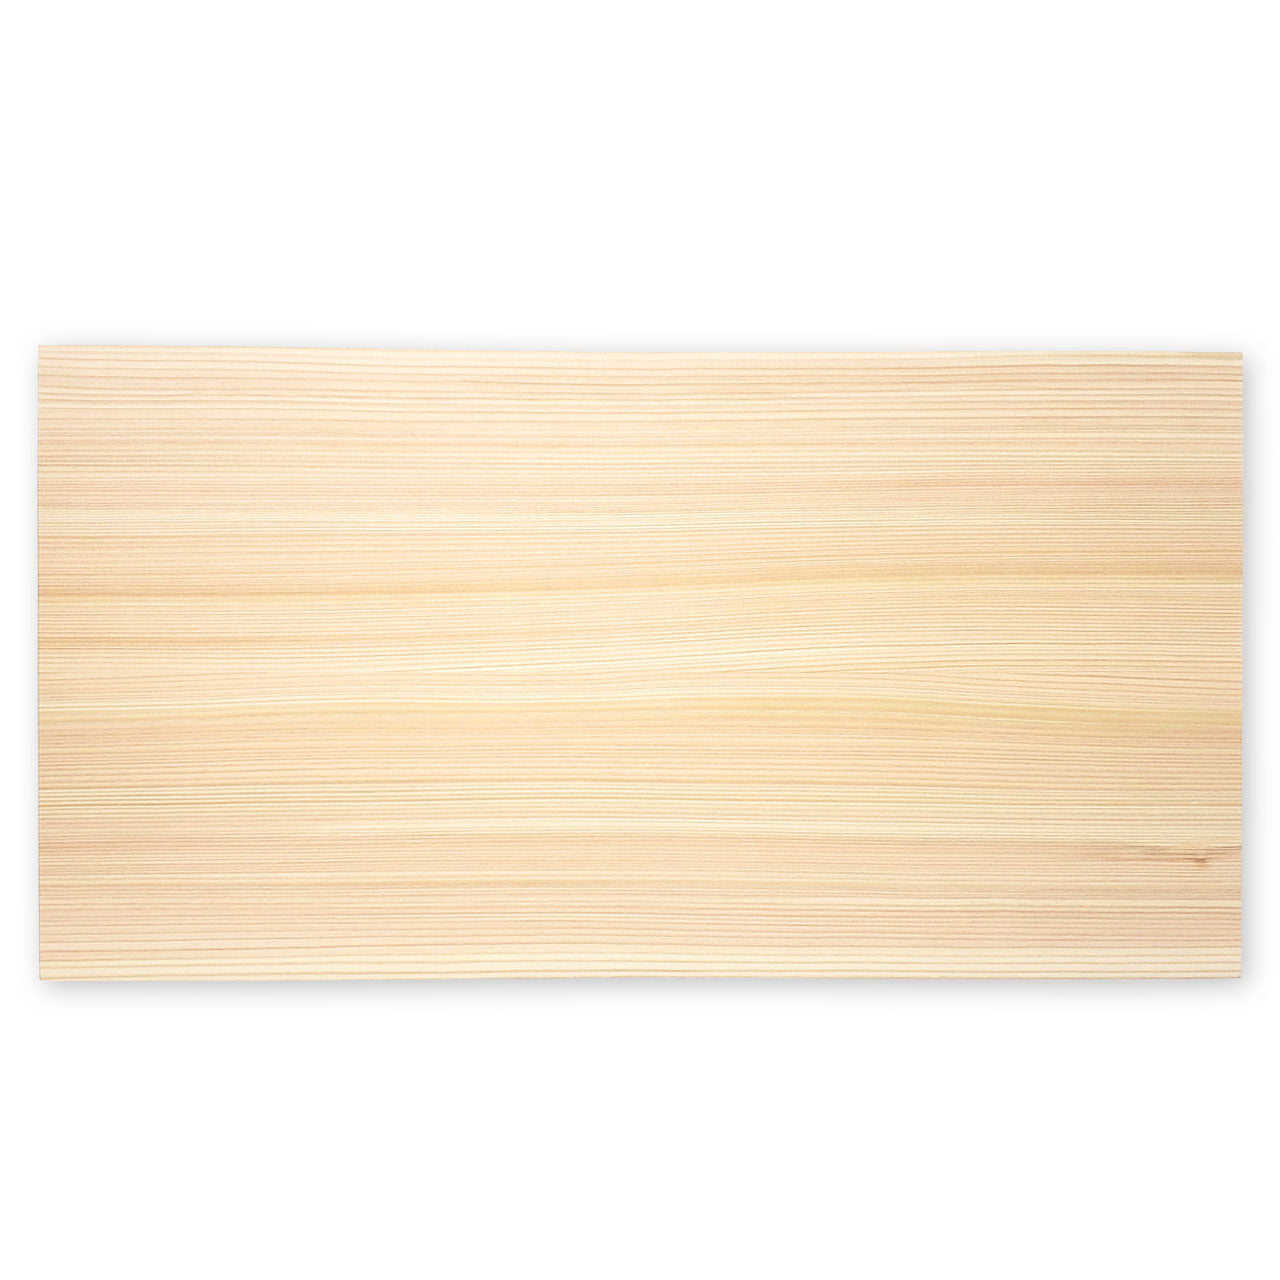 "[NEW] Hinoki (Japanese Cypress) Cutting Board  23.6"" x 11.8"" x 1.6"" ht"